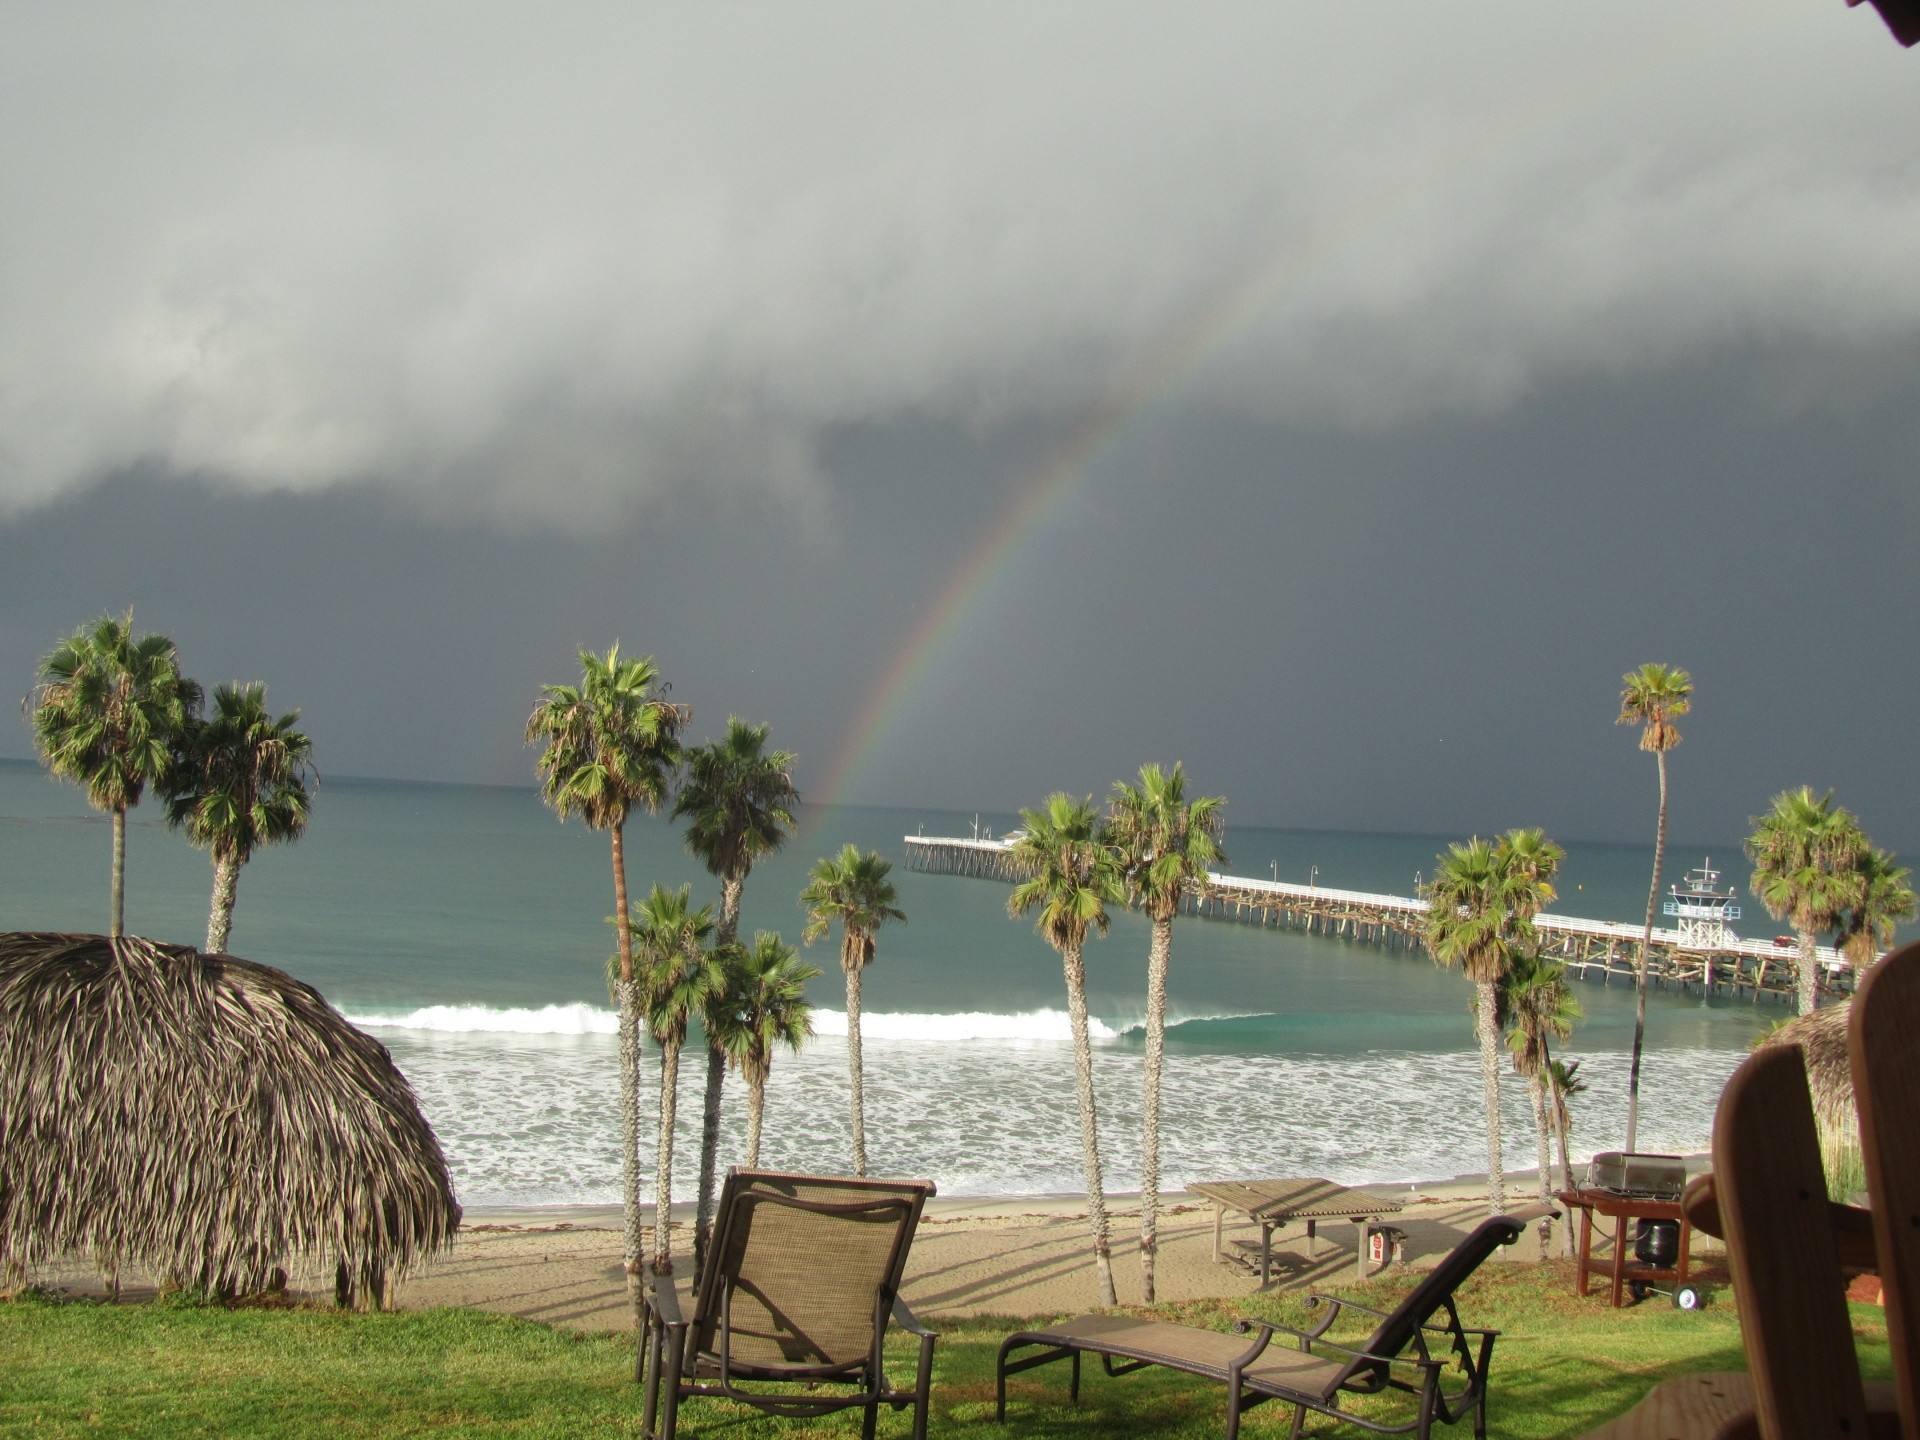 Gregory Borne's photo of San Clemente Pier